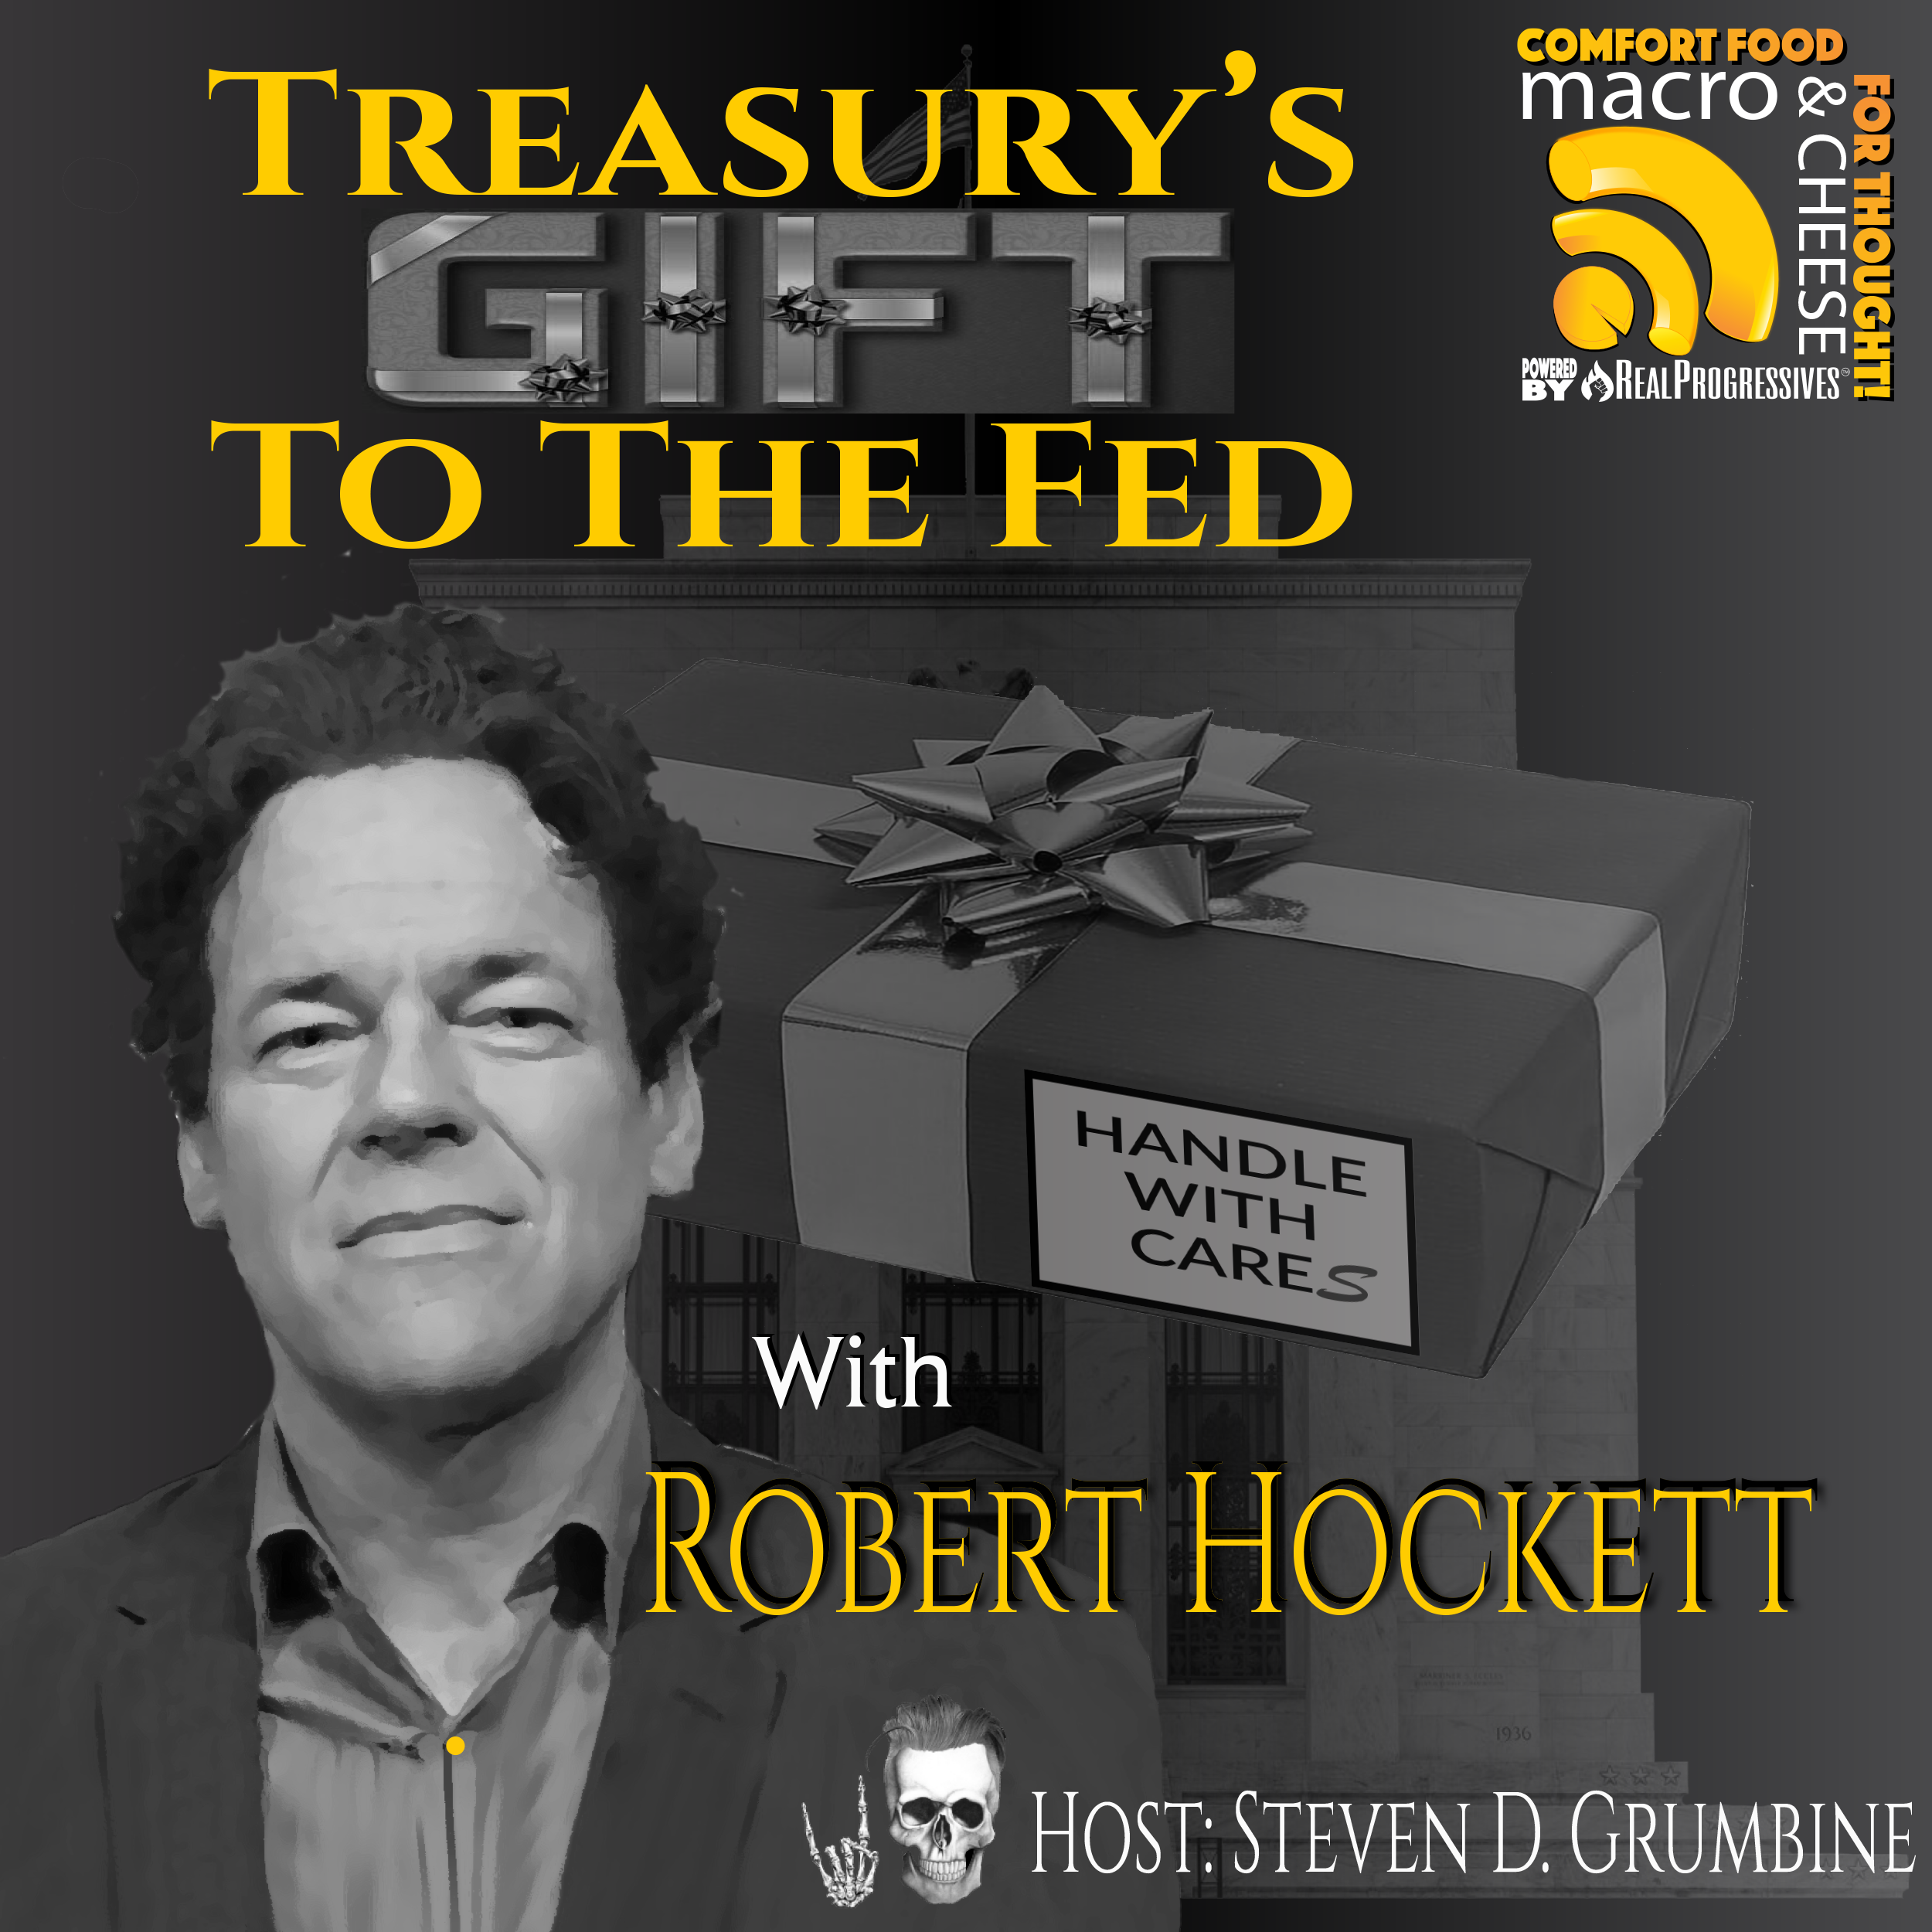 Treasury's Gift To The Fed with Robert Hockett